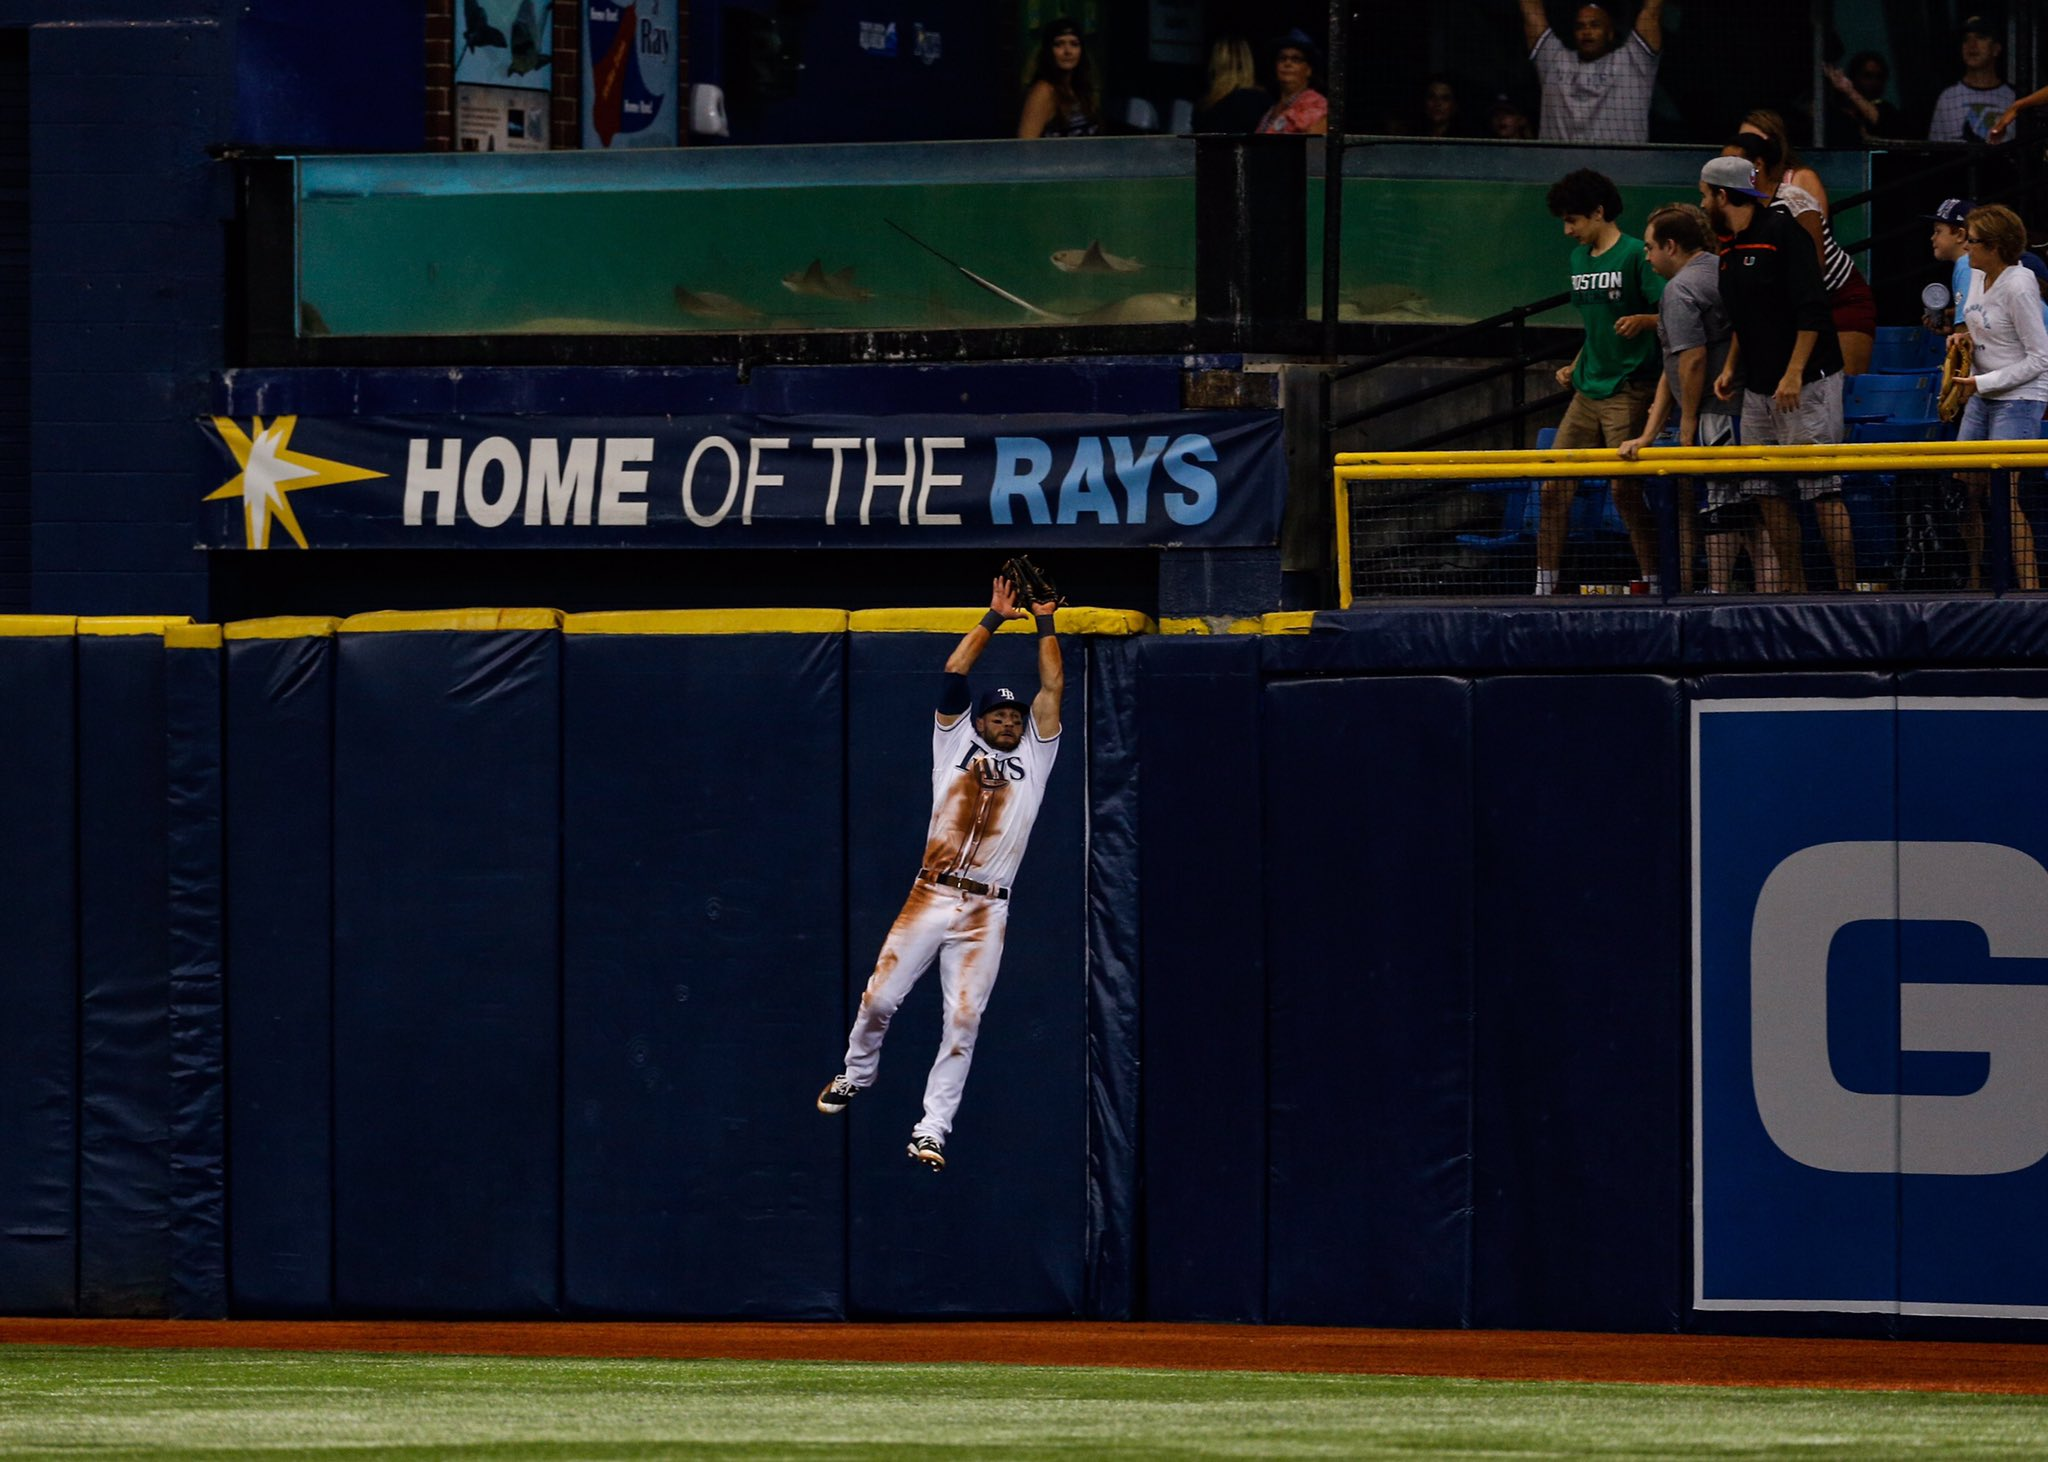 With catches like this gem from last night, it makes you wonder where the Rays would be hadn't Kevin Kiermaier missed two months of the season. (Photo Credit: Tampa Bay Rays)